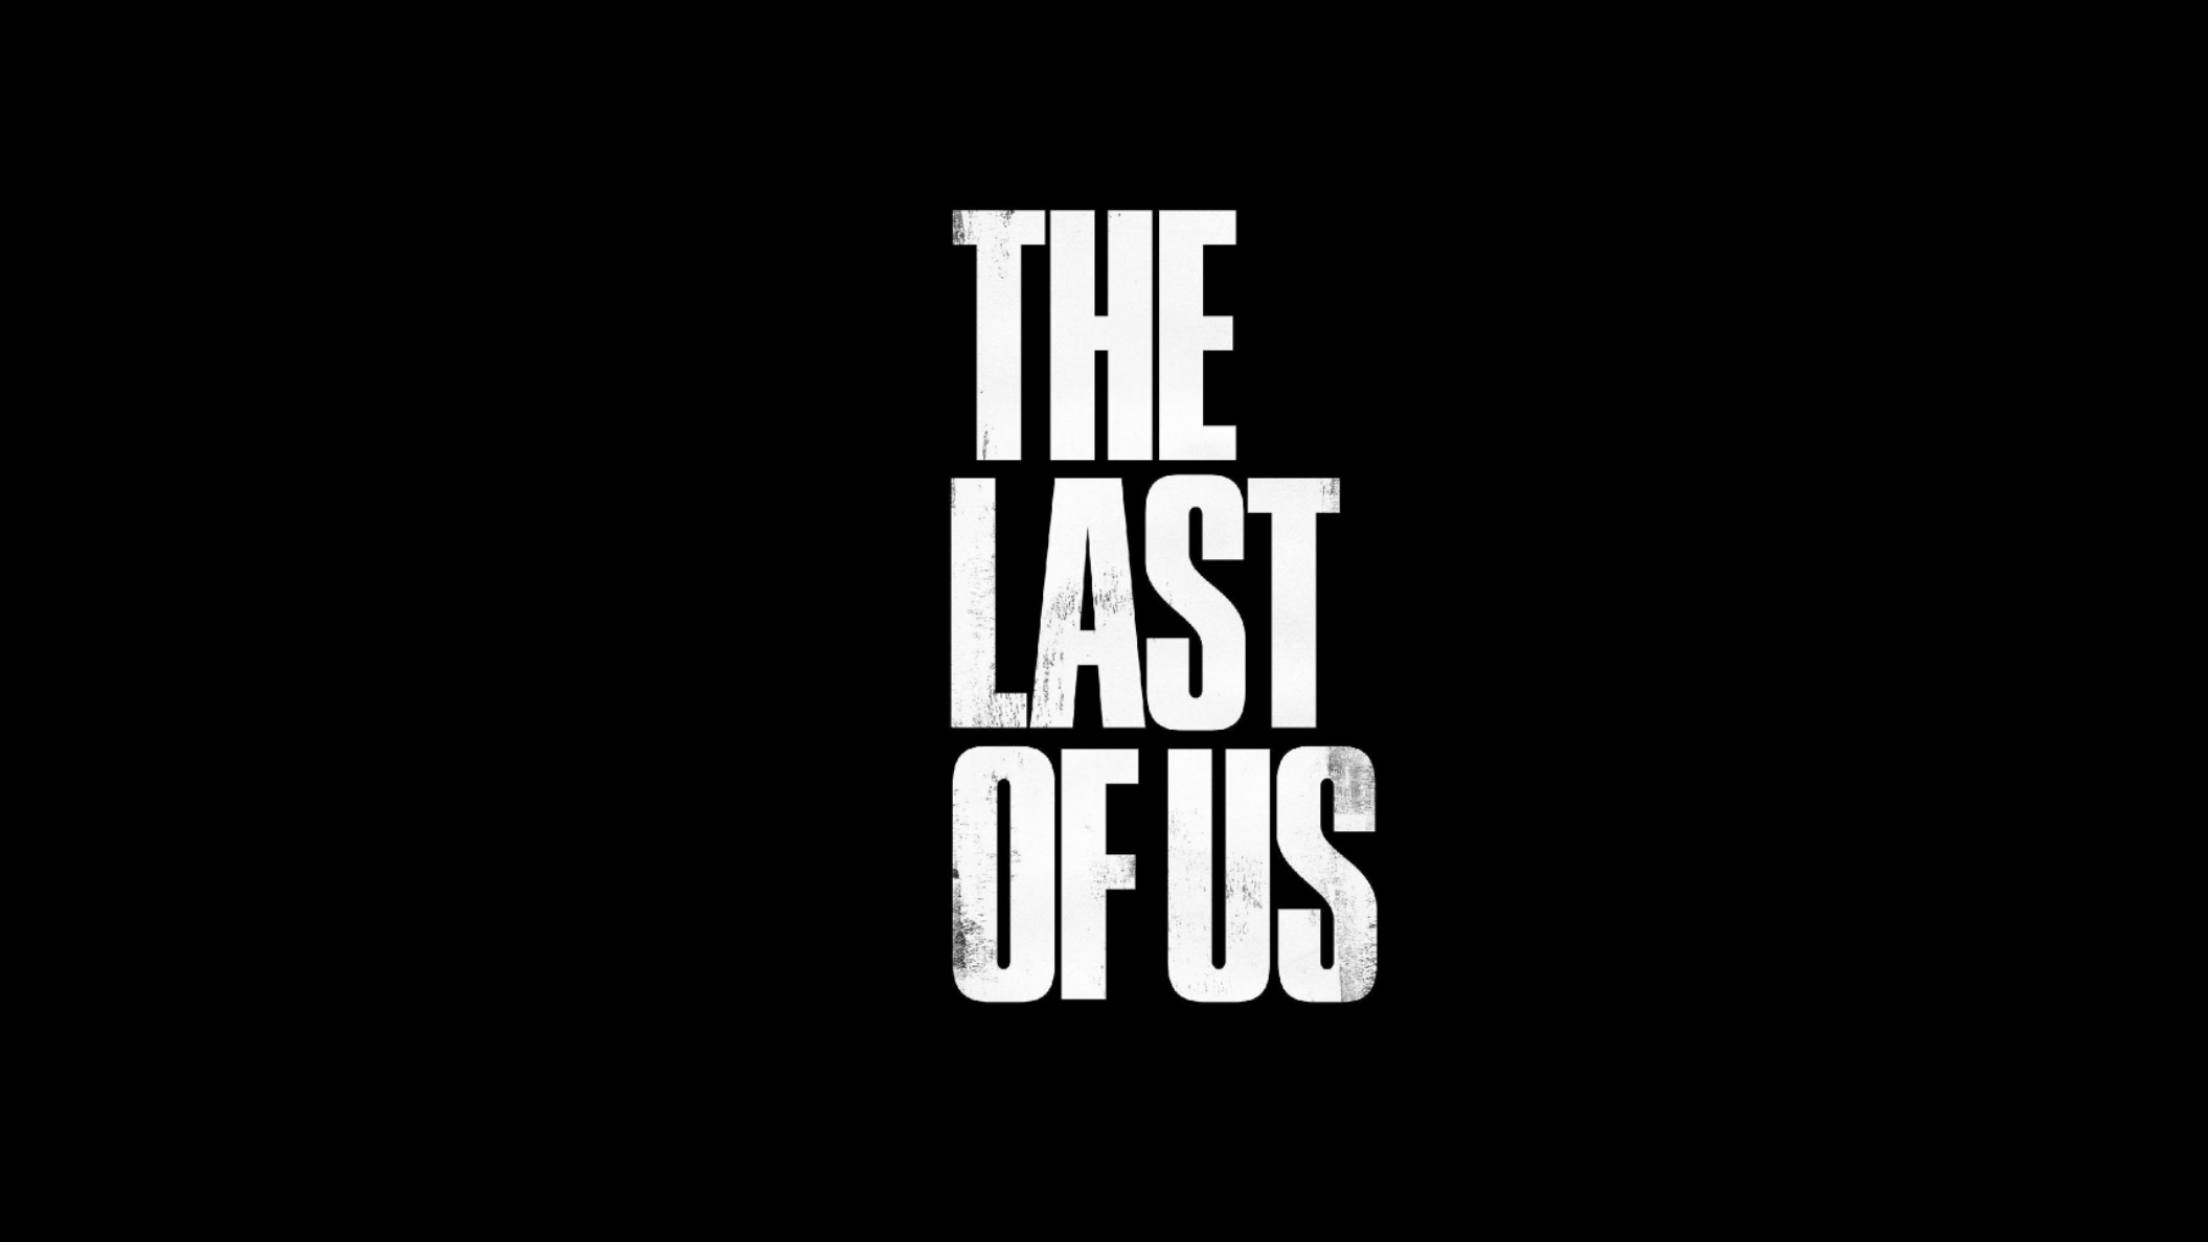 Pin By Theparademon14 On The Last Of Us The Last Of Us Last Of Us Remastered Logos